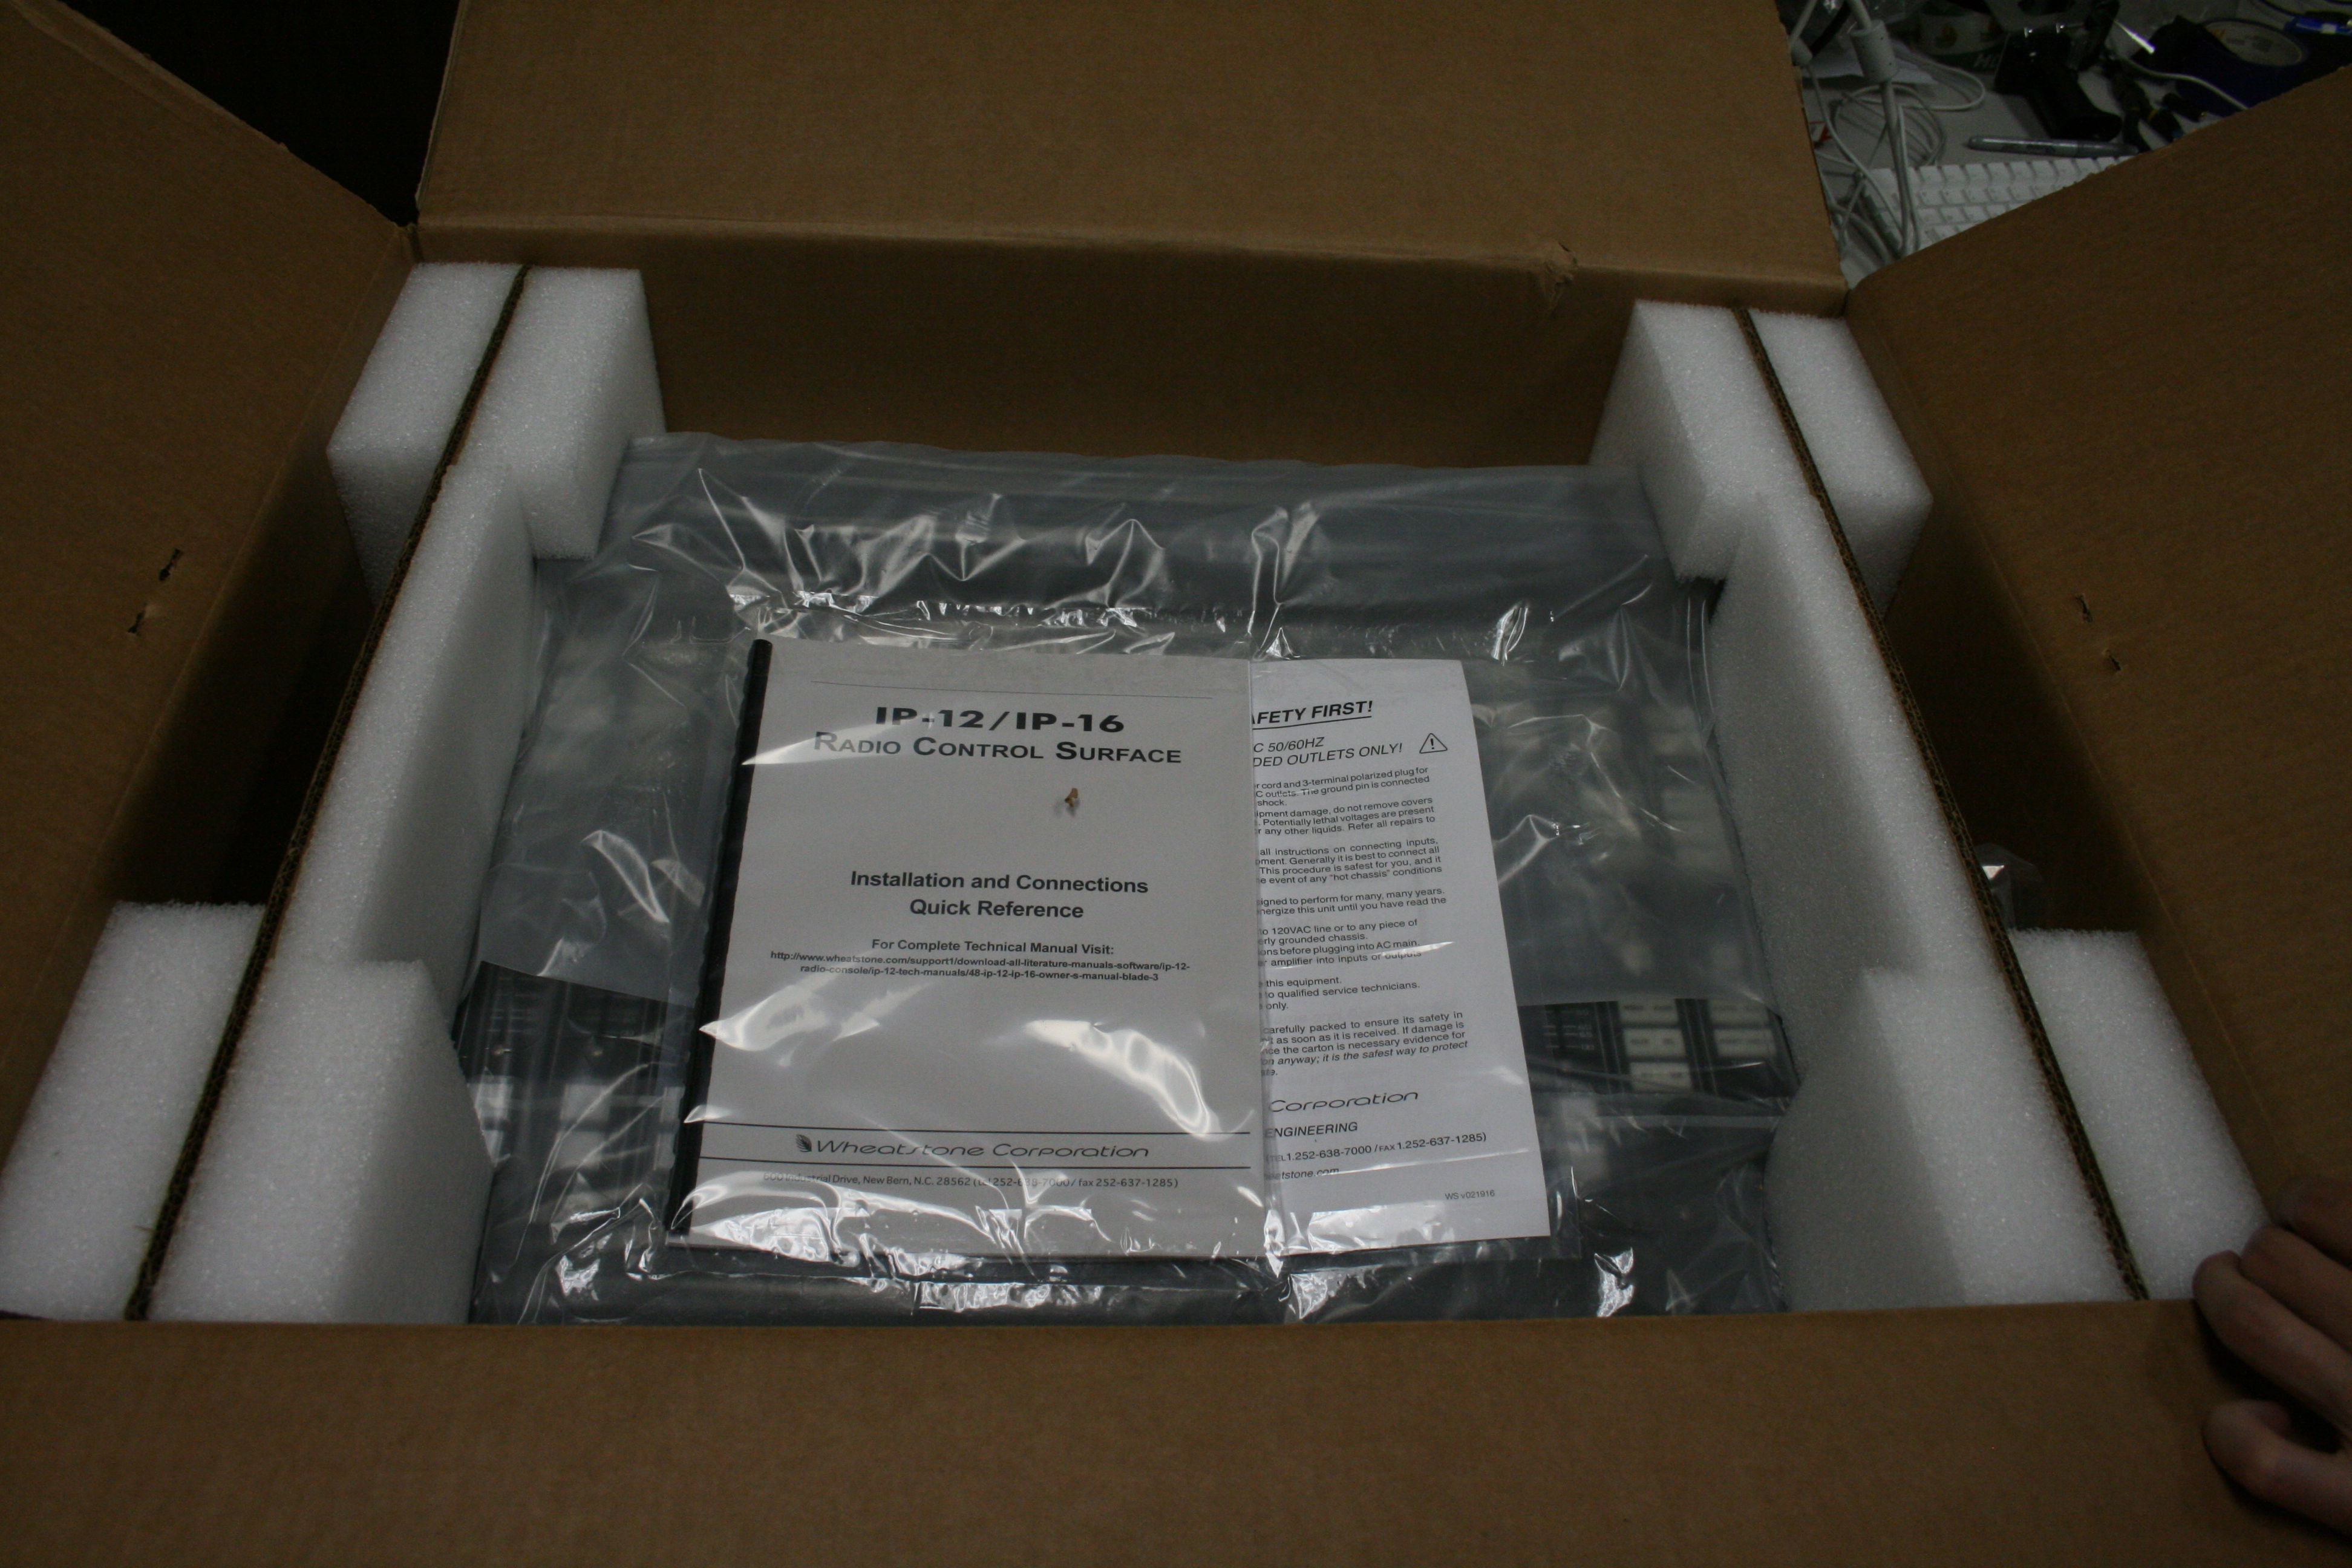 a photo of the new board in its packaging